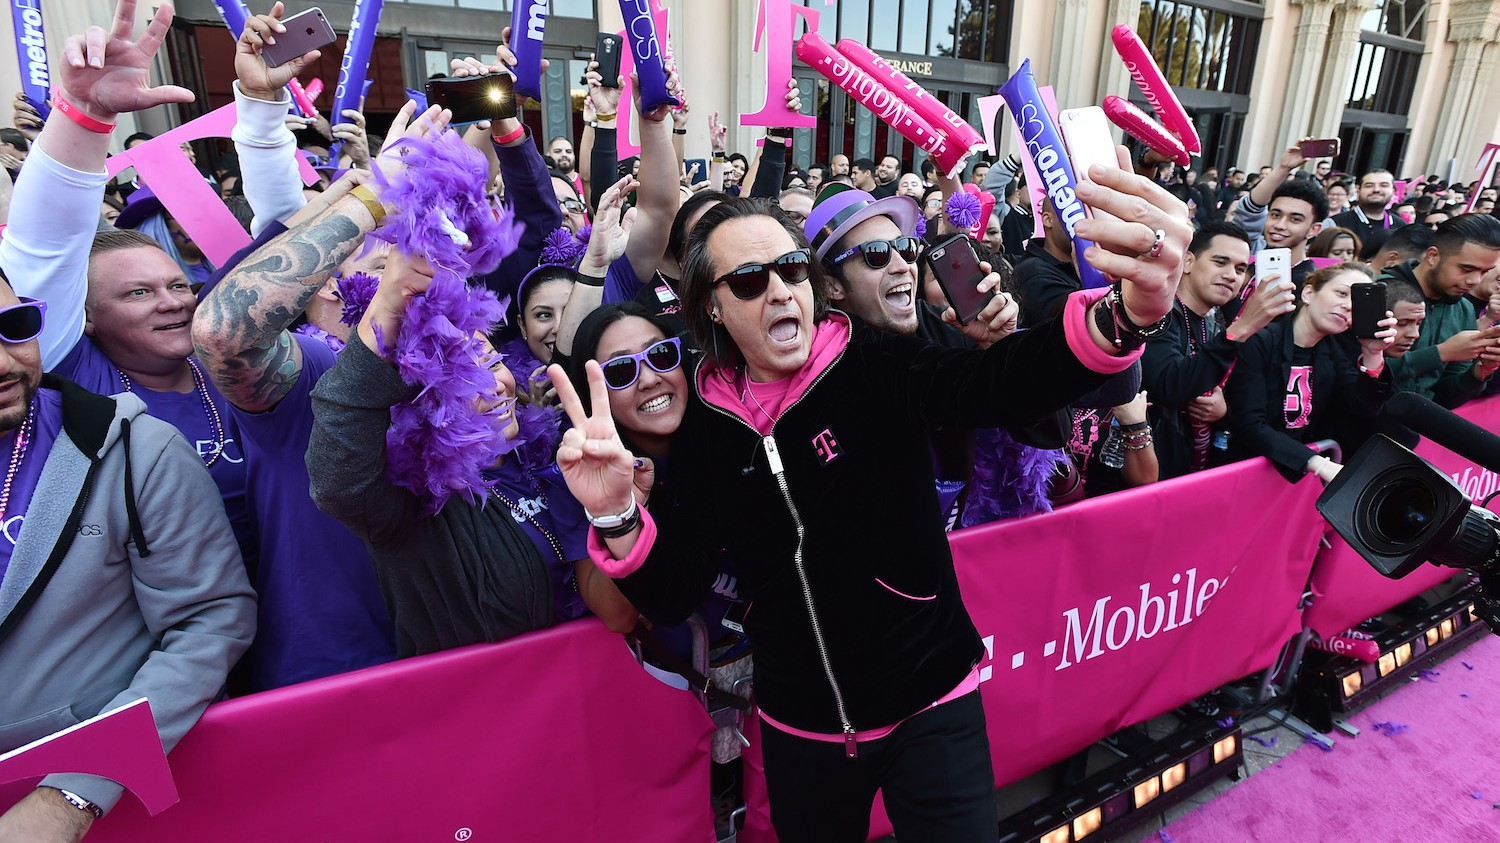 All T-Mobile Users Just Had Their Video Streaming Quality Degraded